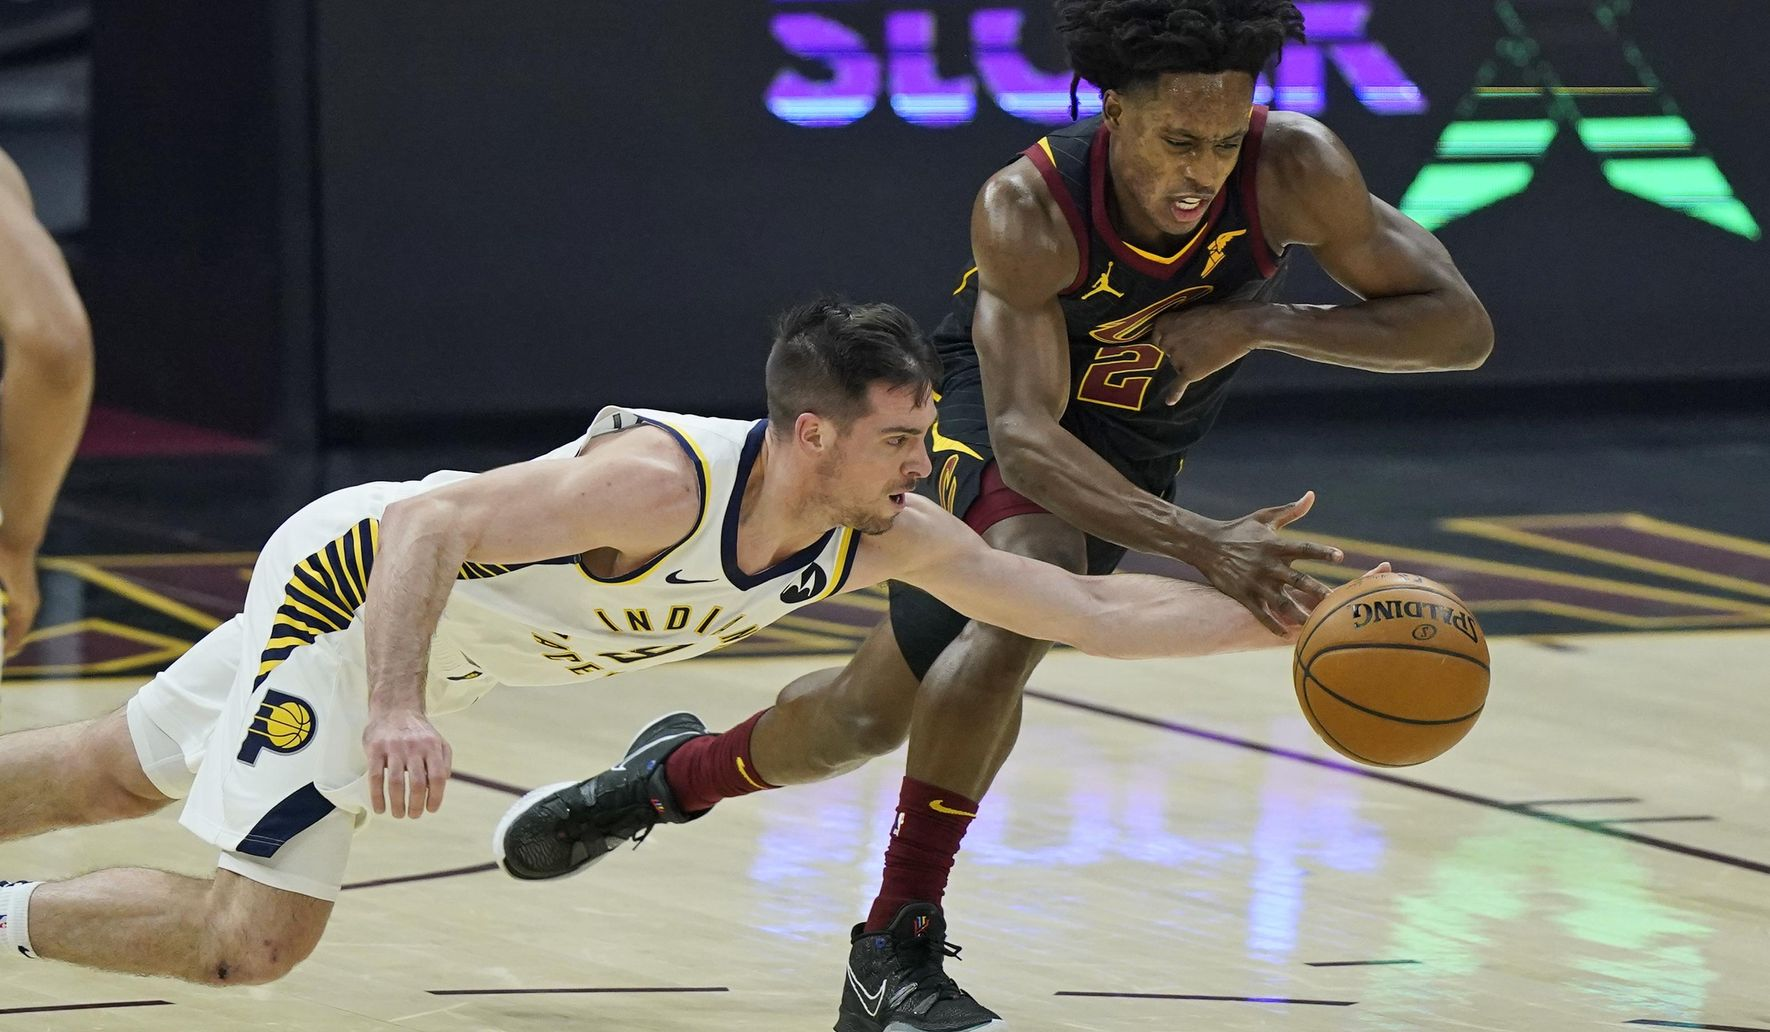 Pacers_cavaliers_basketball_60864_c0-131-3135-1958_s1770x1032